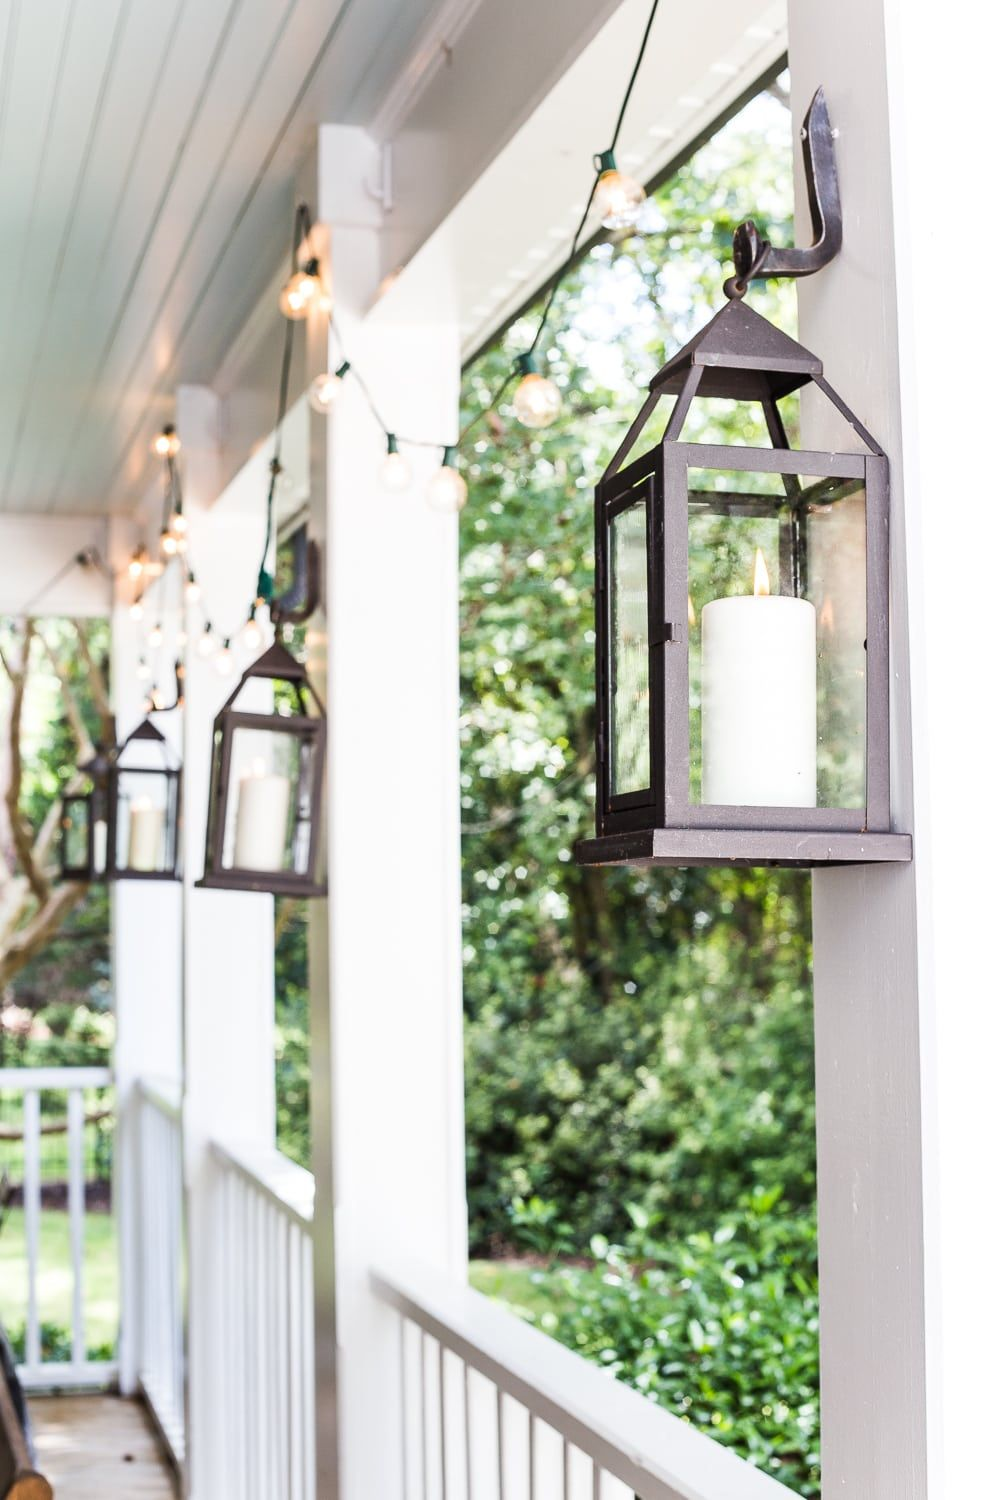 Fall Porch Tour and How to Add Cozy Style Outdoors - Bless'er House